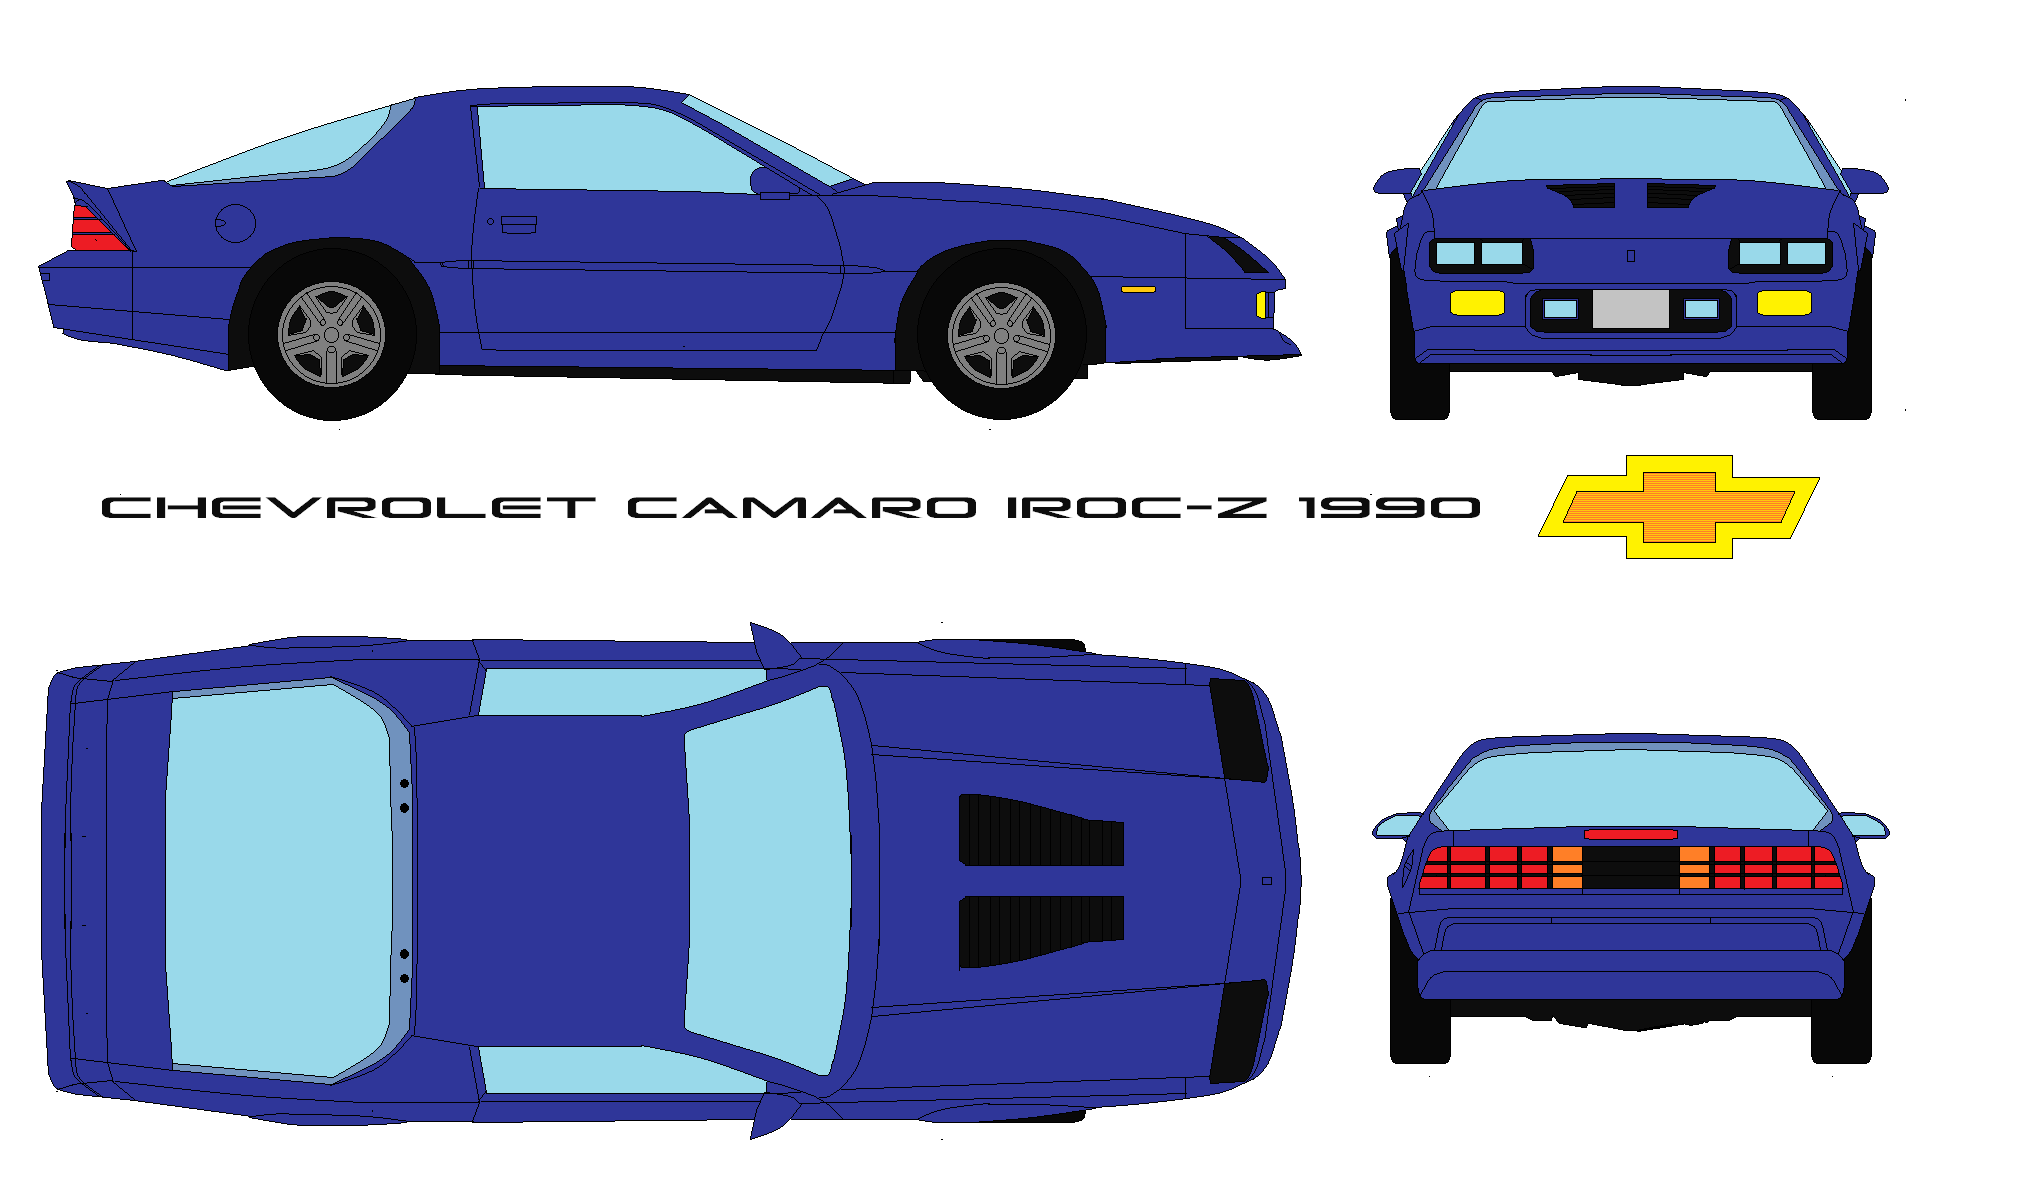 chevrolet camaro iroc z 1990 by bagera3005 on deviantart chevrolet camaro iroc z 1990 by